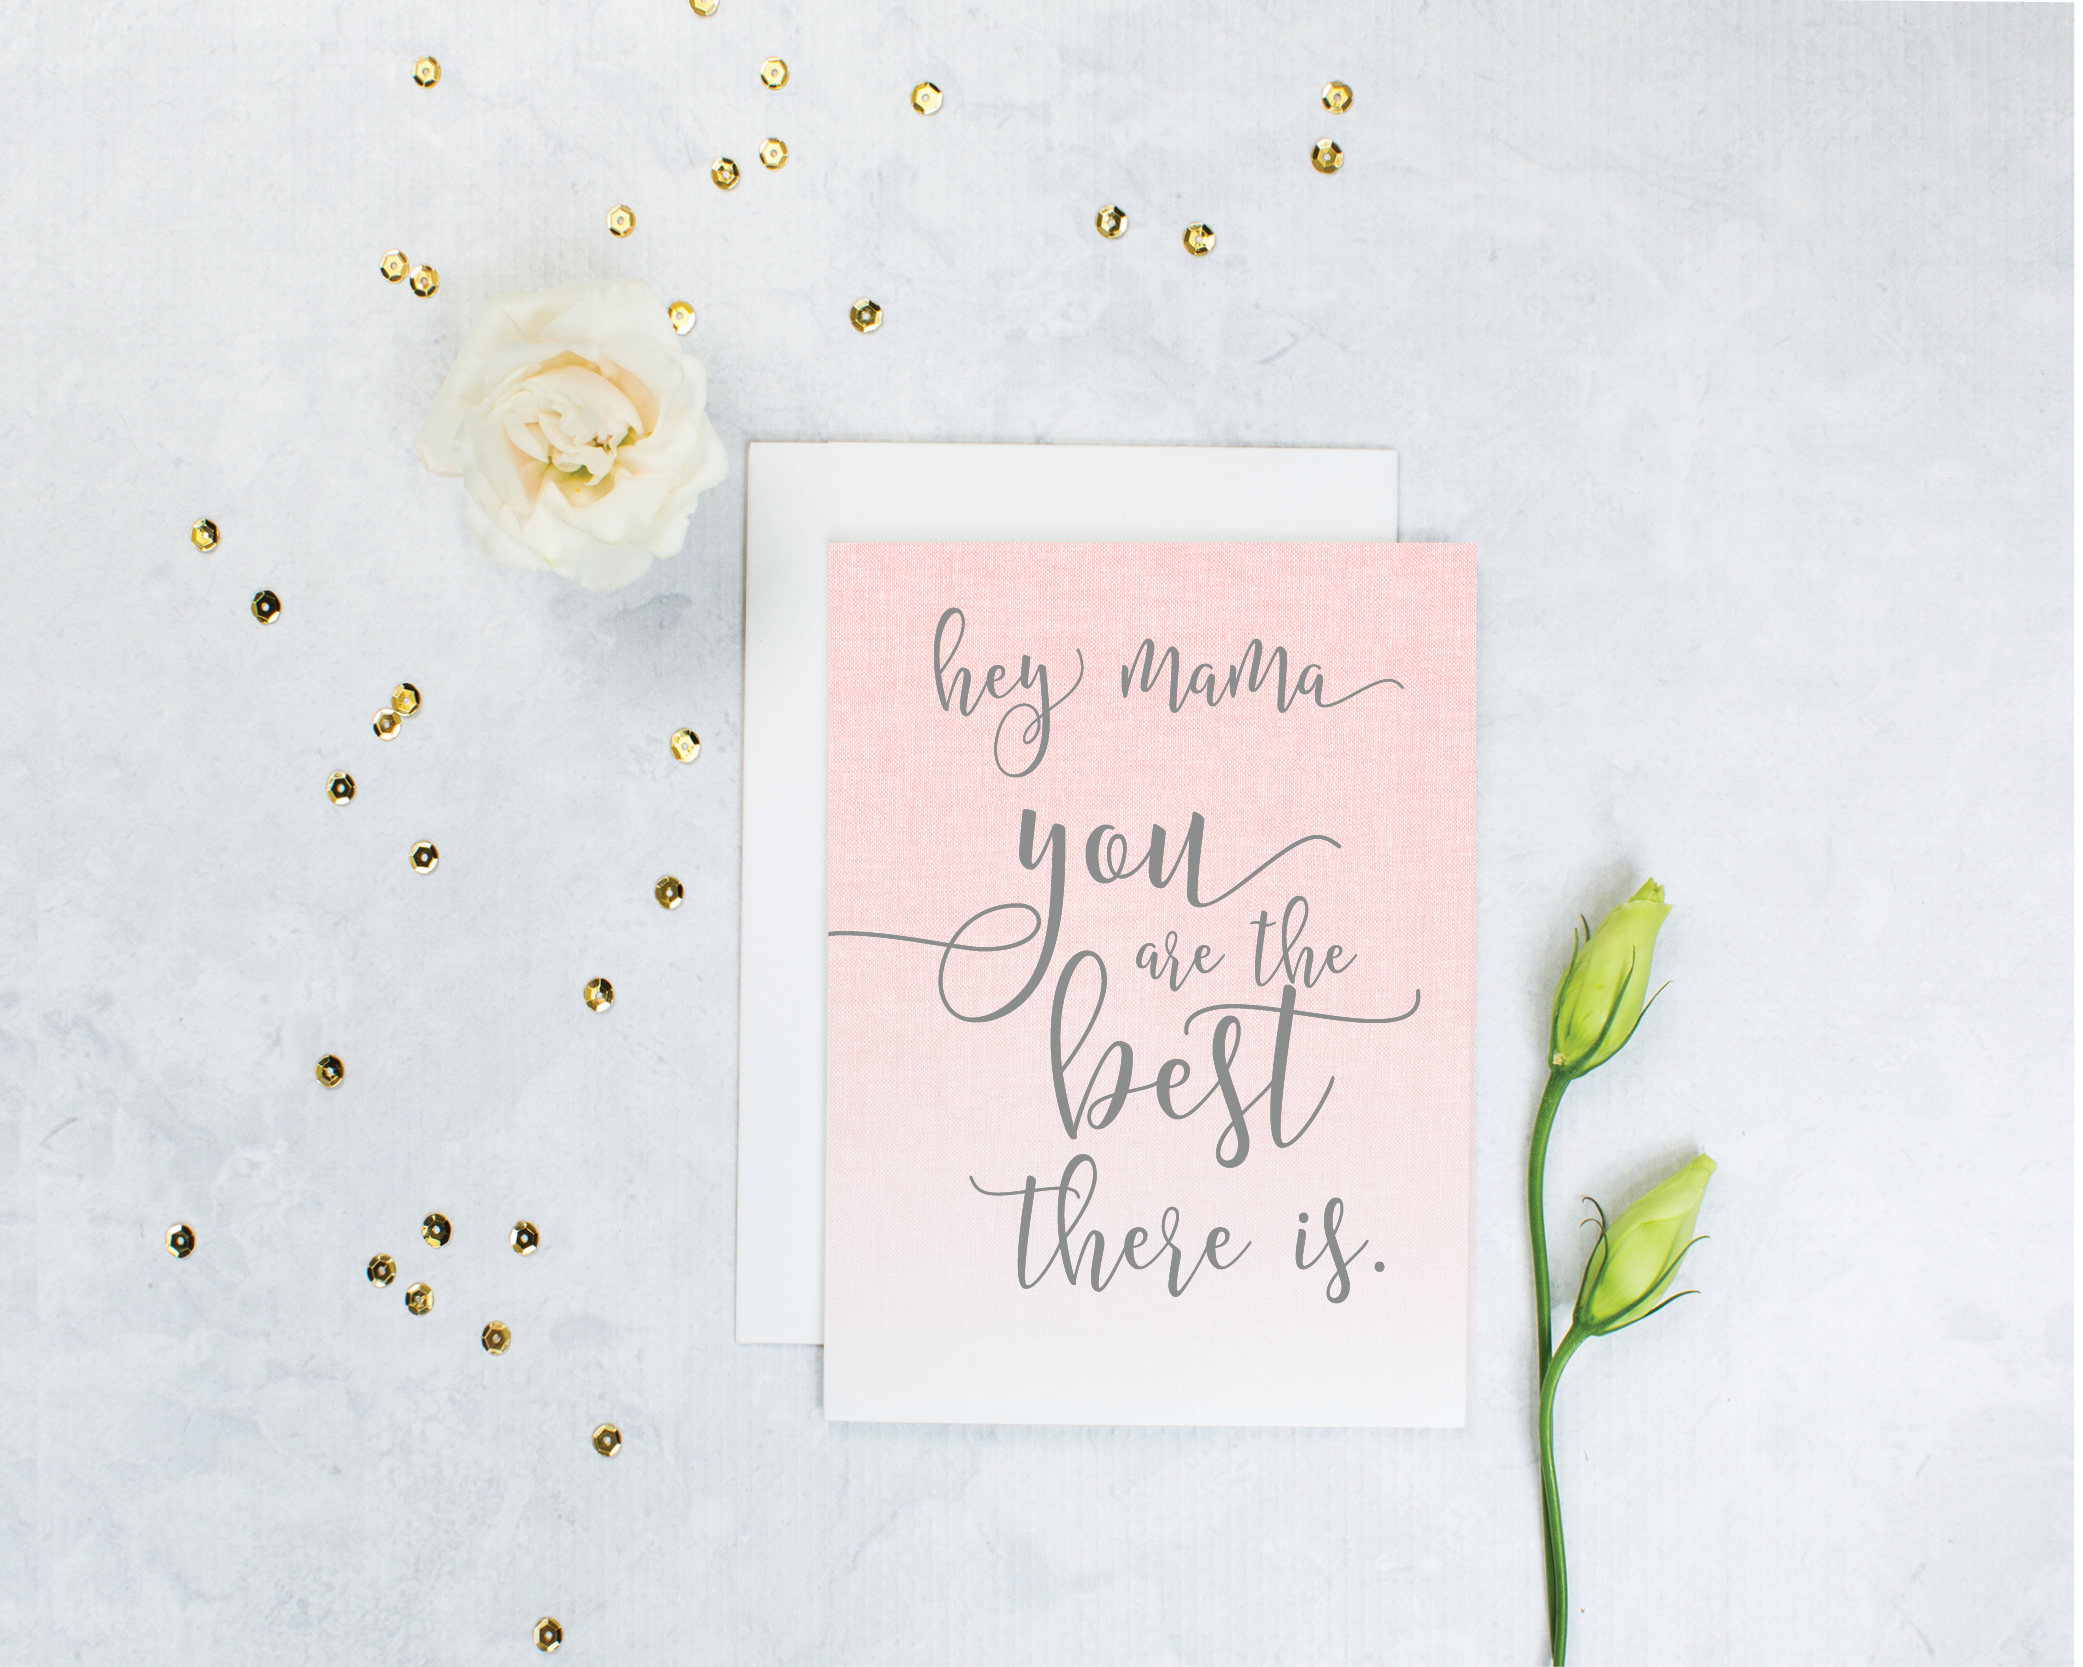 mom encouragement card - mothers day card - you are the best there is, by grace and serendipity